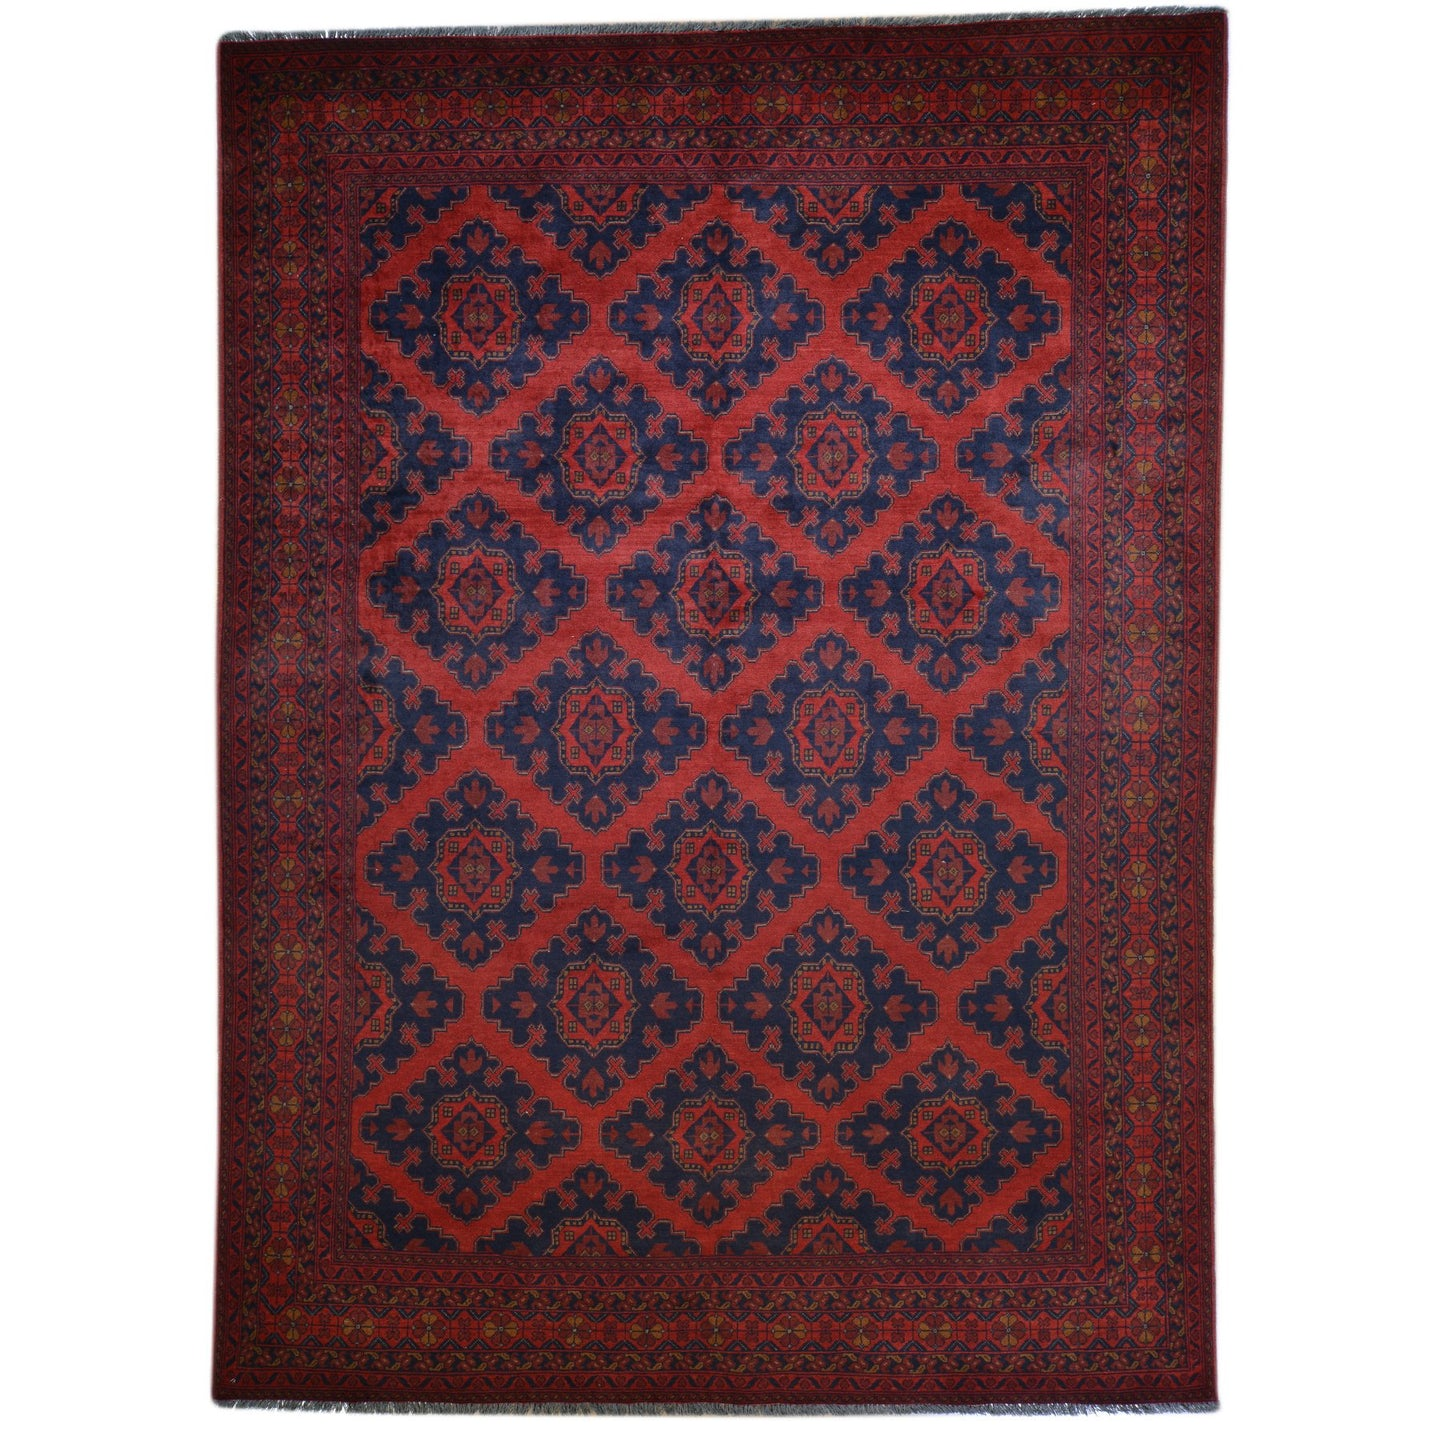 Hand-Knotted Afghani Turkoman Tribal Wool Handmade Rug (Size 6.6 X 9.9) Brral-2634